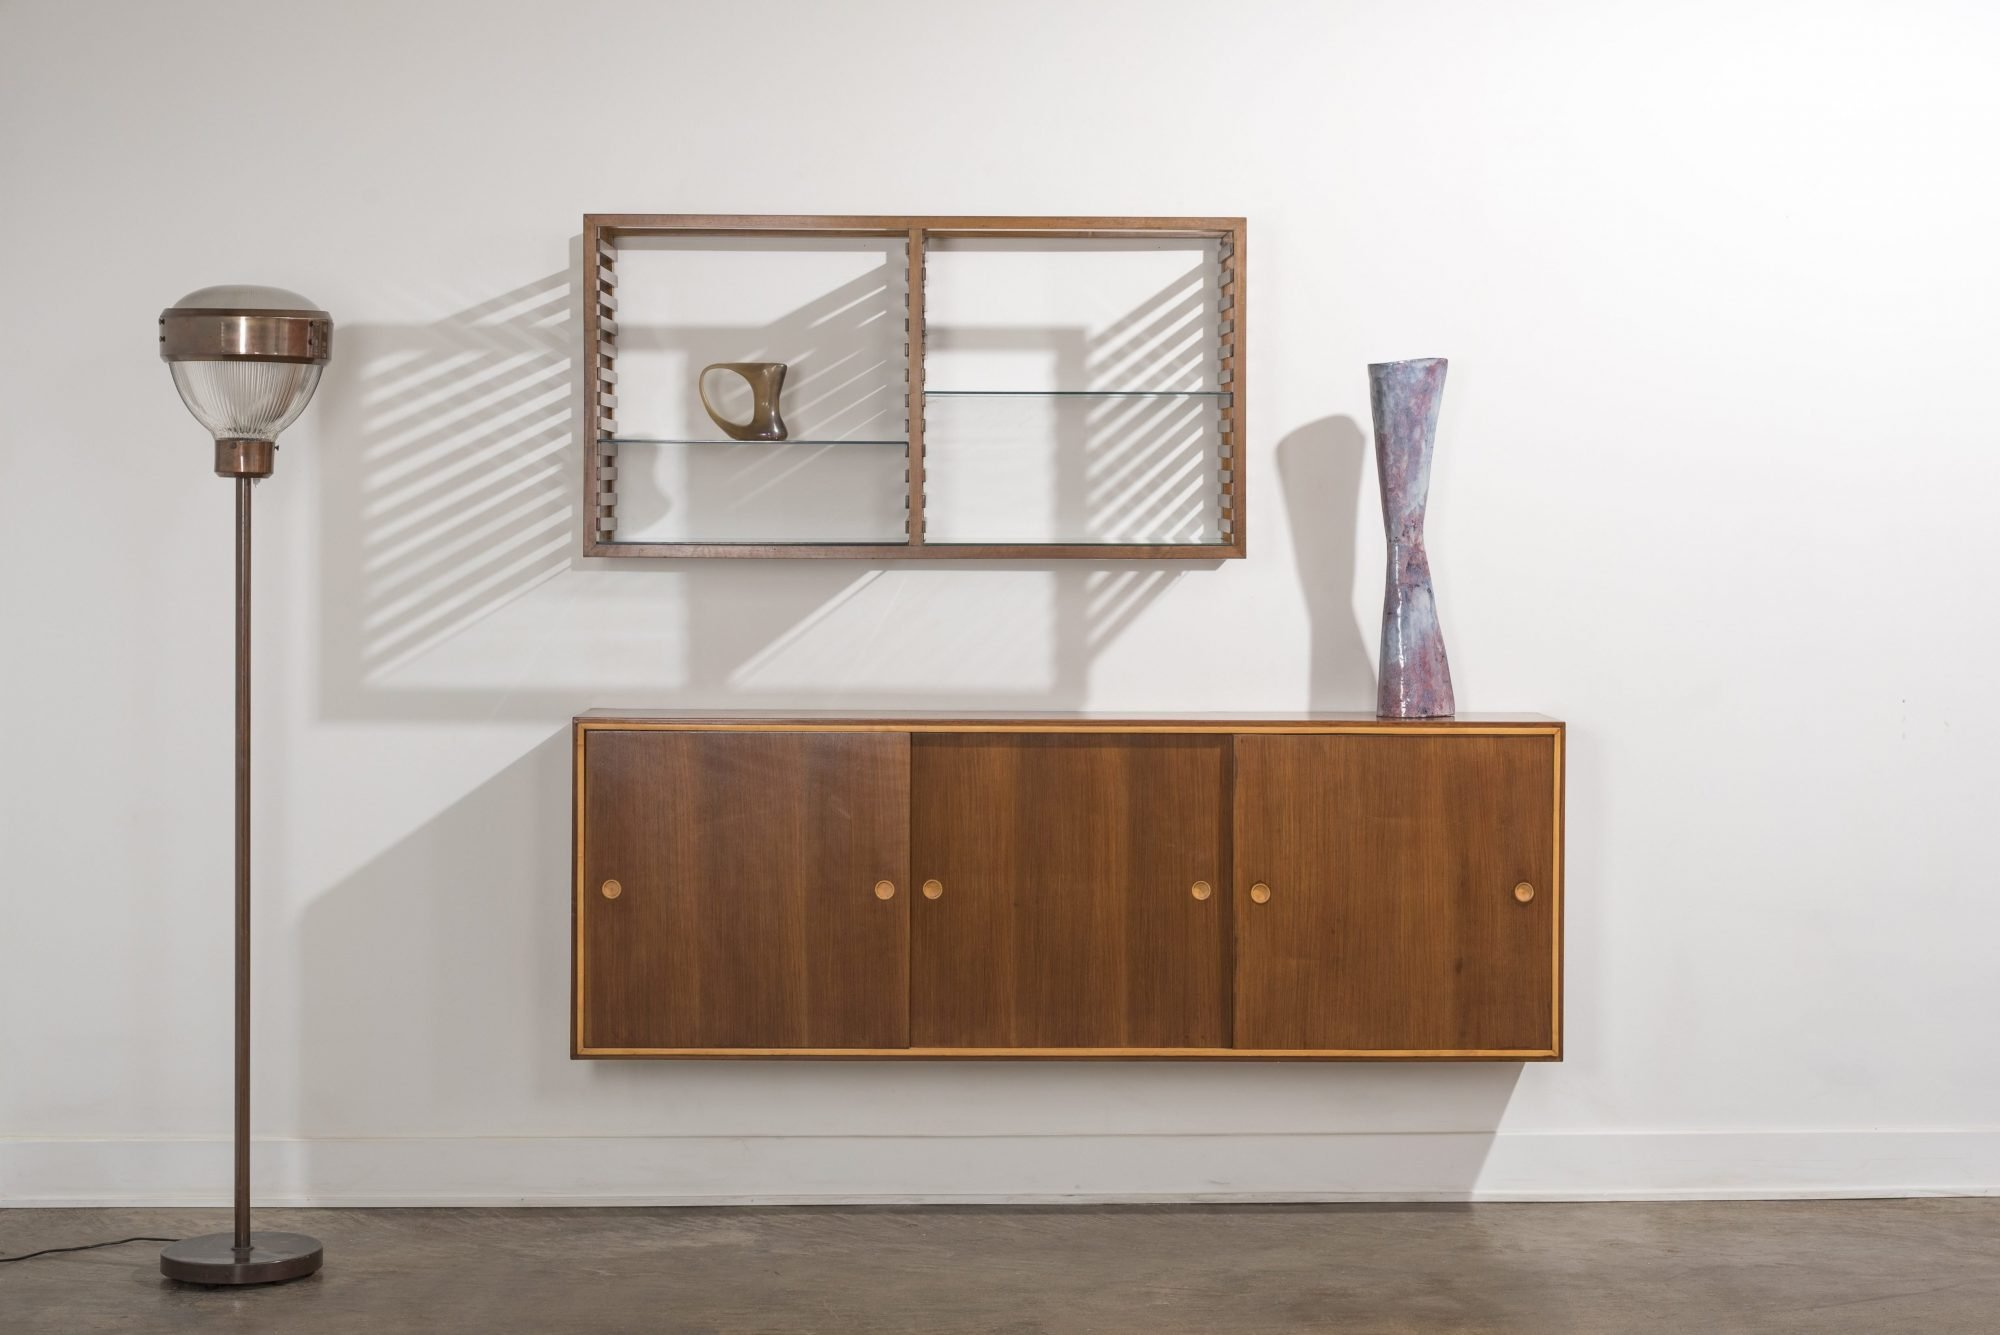 Front view with lateral shade of Franco Albini bookshelf and wall-mounted cabinet a ceramic Melotti vase, a Ferro murano vase, and a BBPR floor lamp at Italian design and furniture Casati Gallery